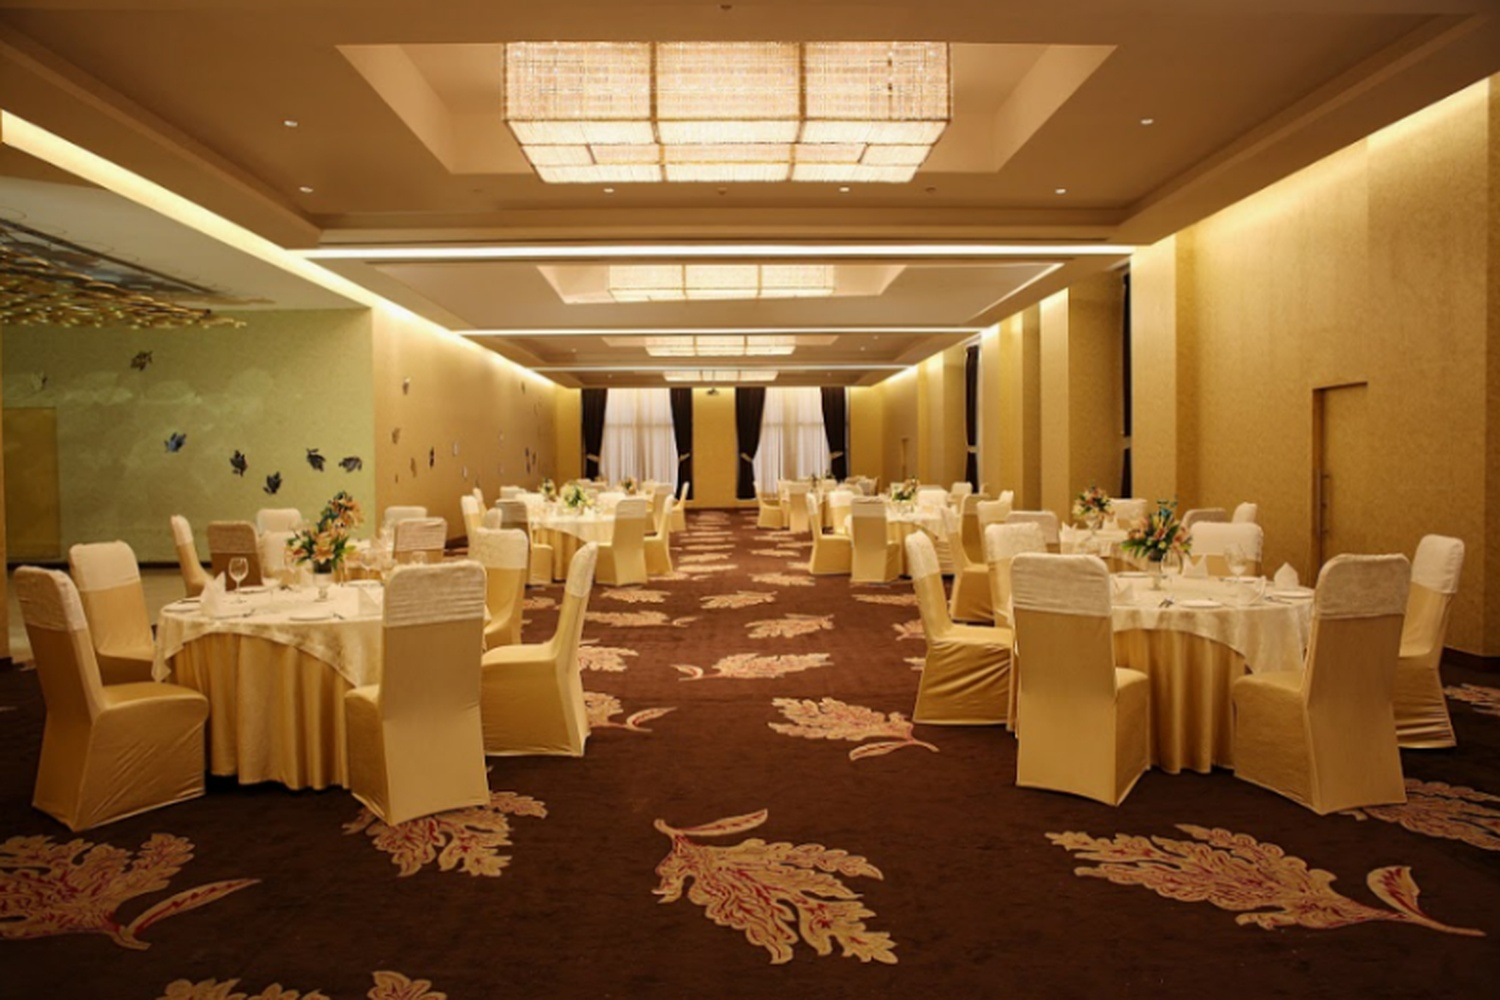 Radisson Blu Dwarka Delhi Banquet Hall 5 Star Wedding